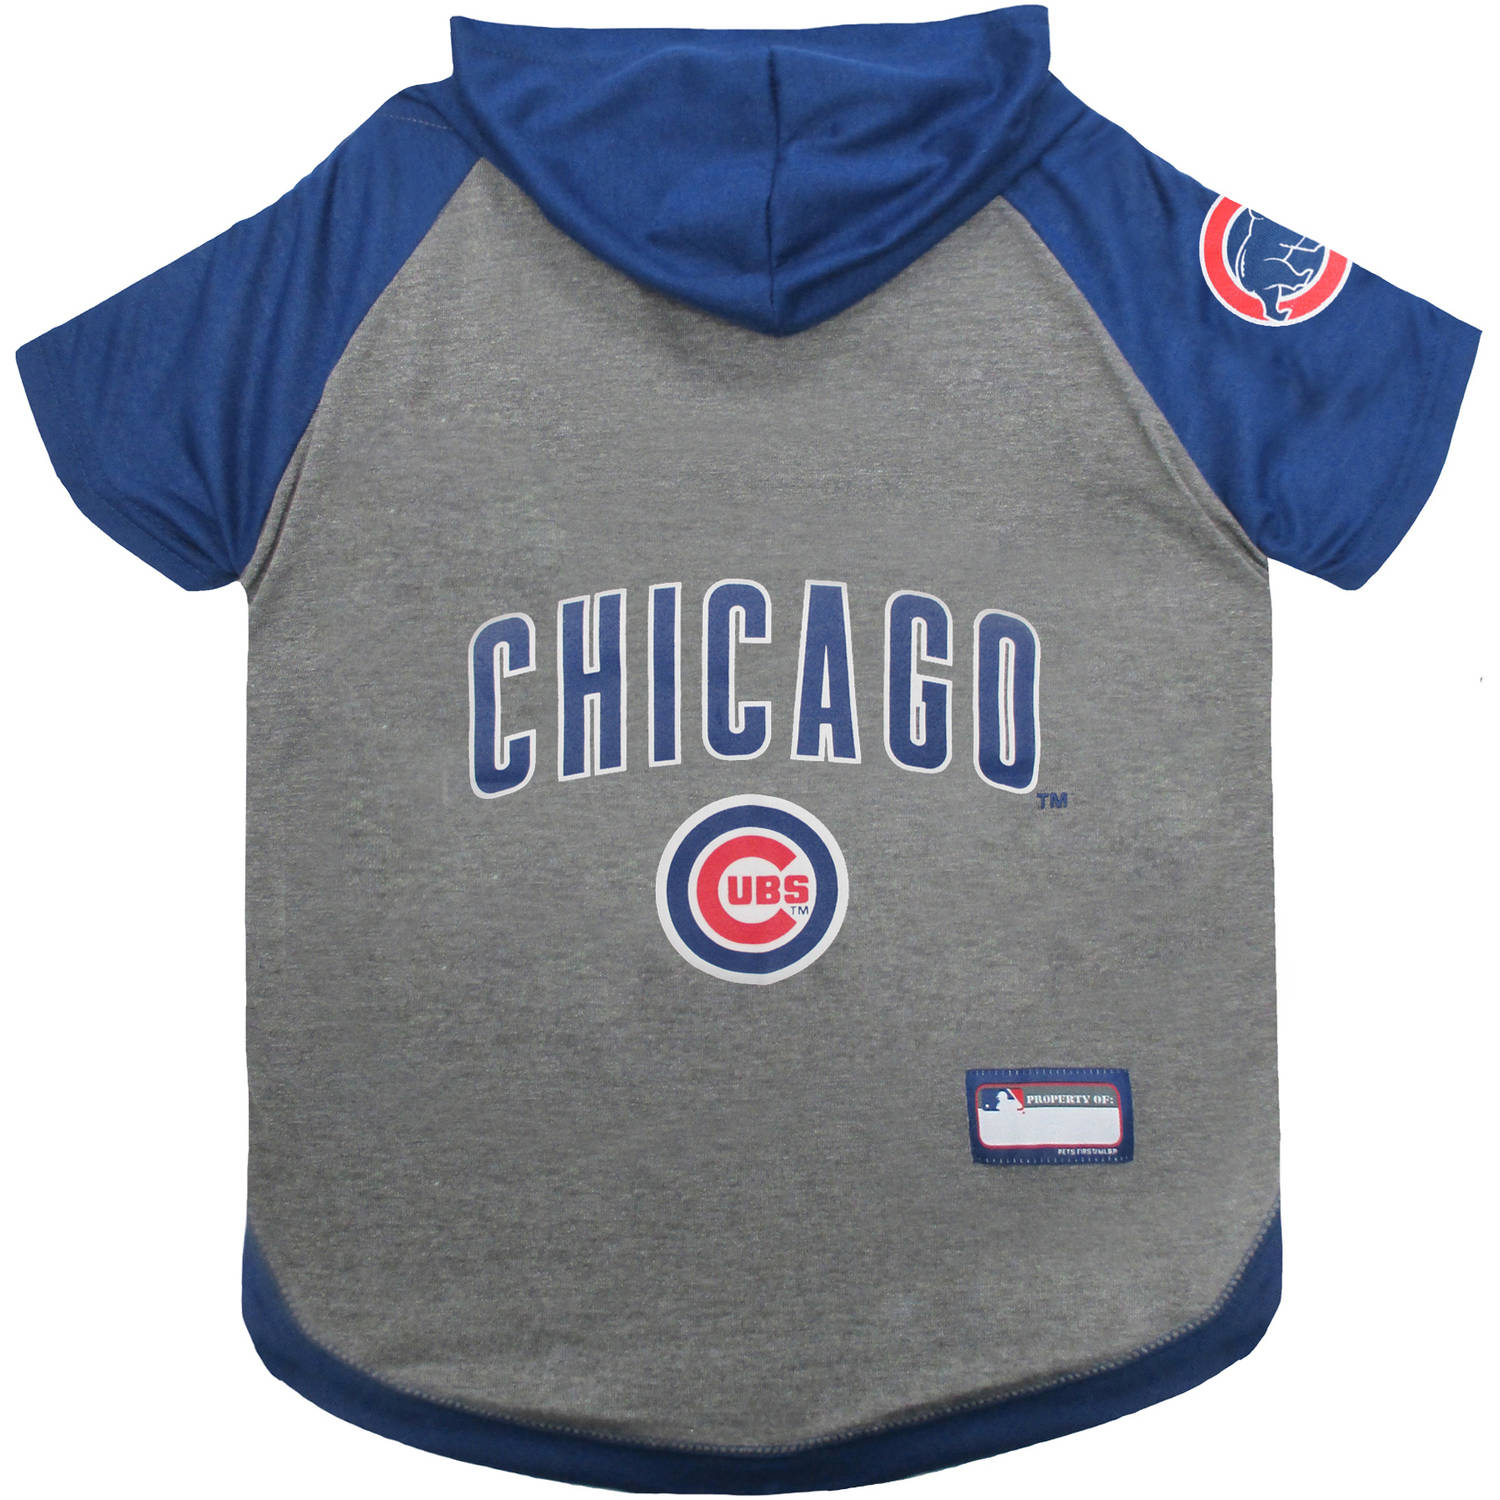 Pets First MLB Chicago Cubs Hoodie Tee Shirt by Pets First